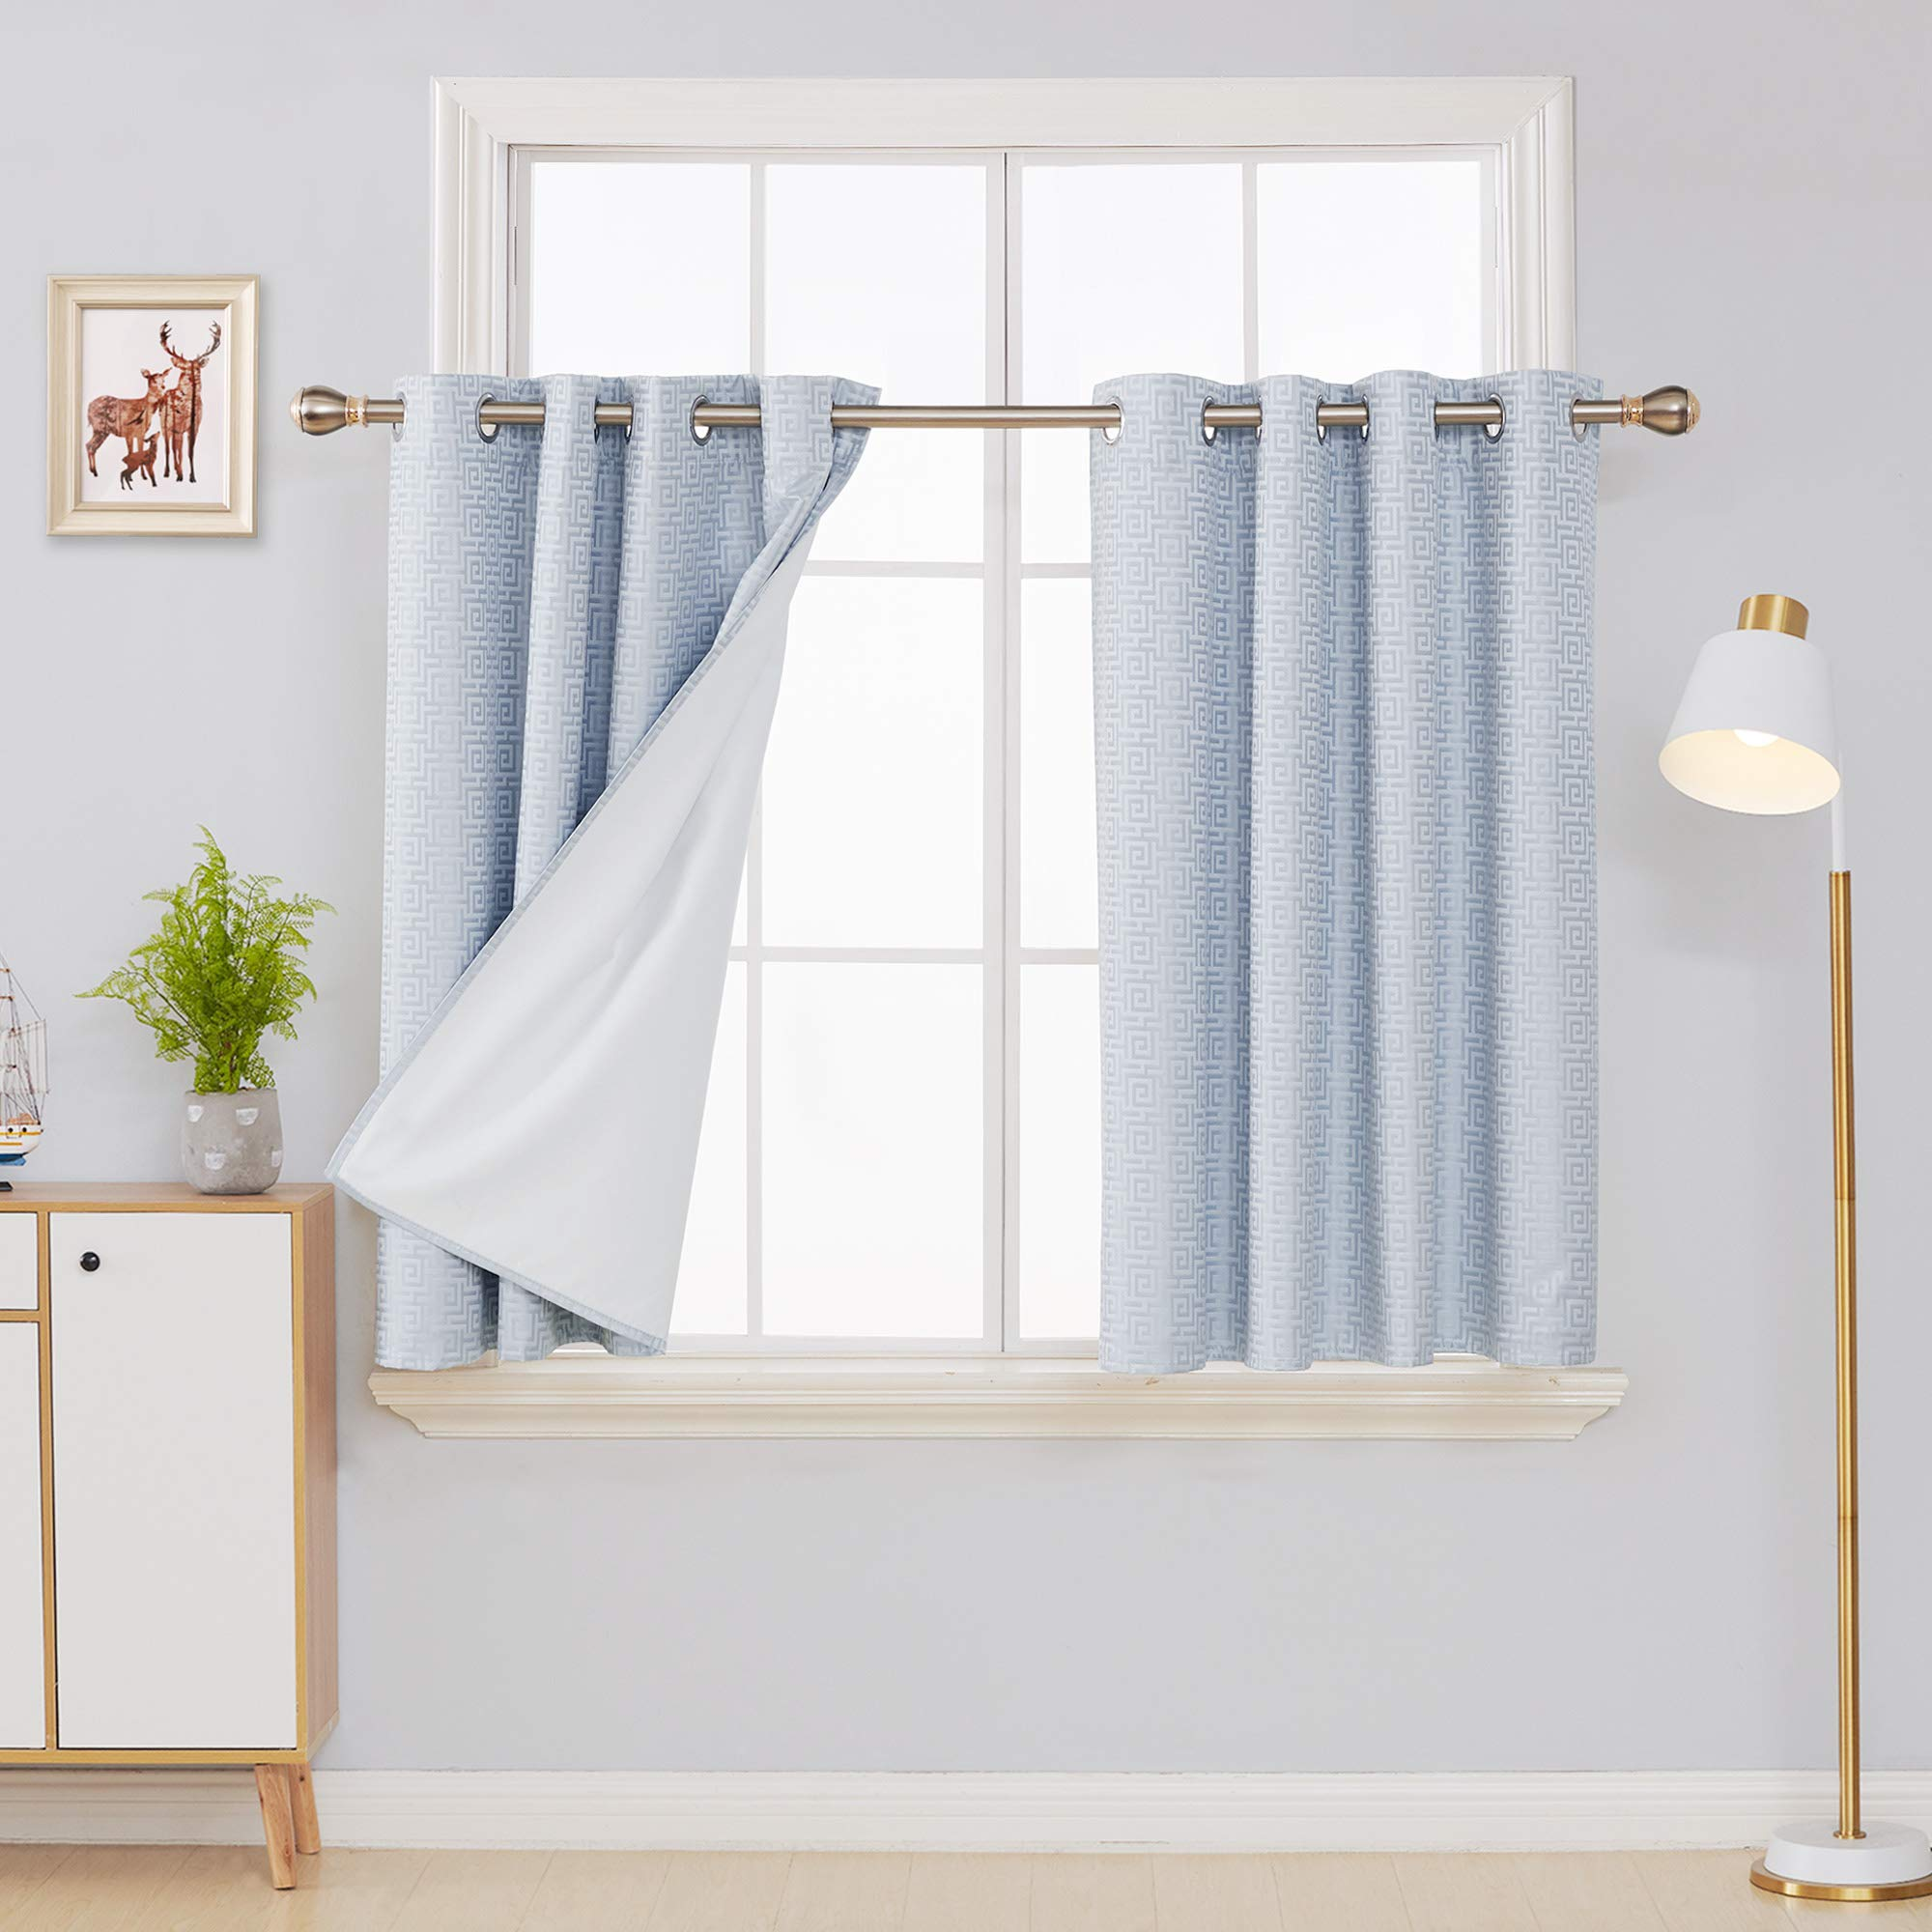 Deconovo Modern Artistic Maze Design Jacaquard Curtains with Thermal Lining Grommet Top Energy Saving Noise Reducing 100 Total Blackout Curtains for Kitchen 52x45 Inch 2 Panels Baby Blue